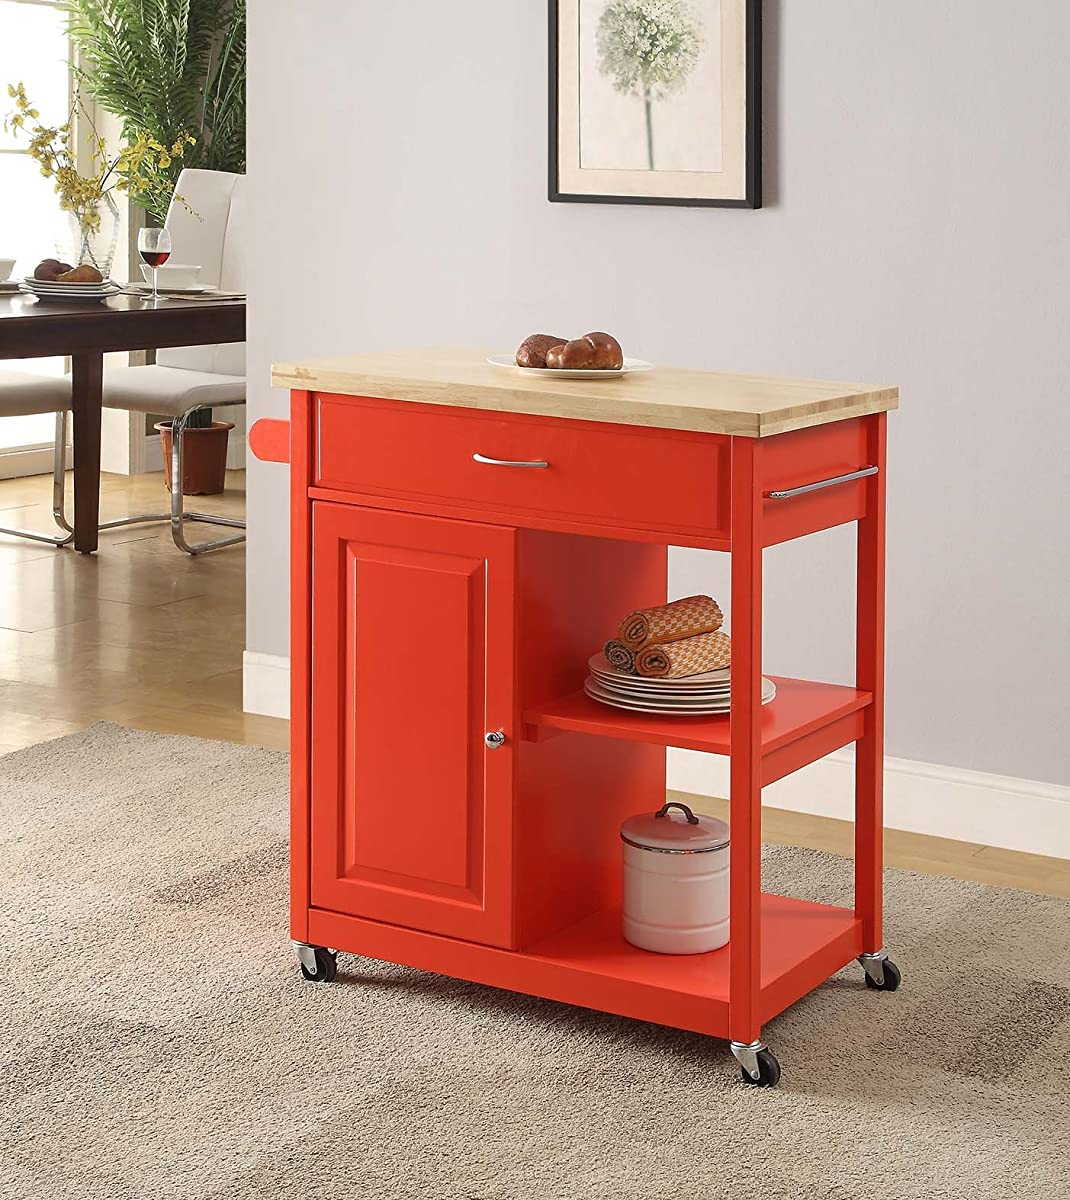 "Oliver and Smith - Nashville Collection - Mobile Kitchen Island Cart on Wheels - Red - Natural Oak Butcher Block - 30"" W x 18"" L x 36"" H"